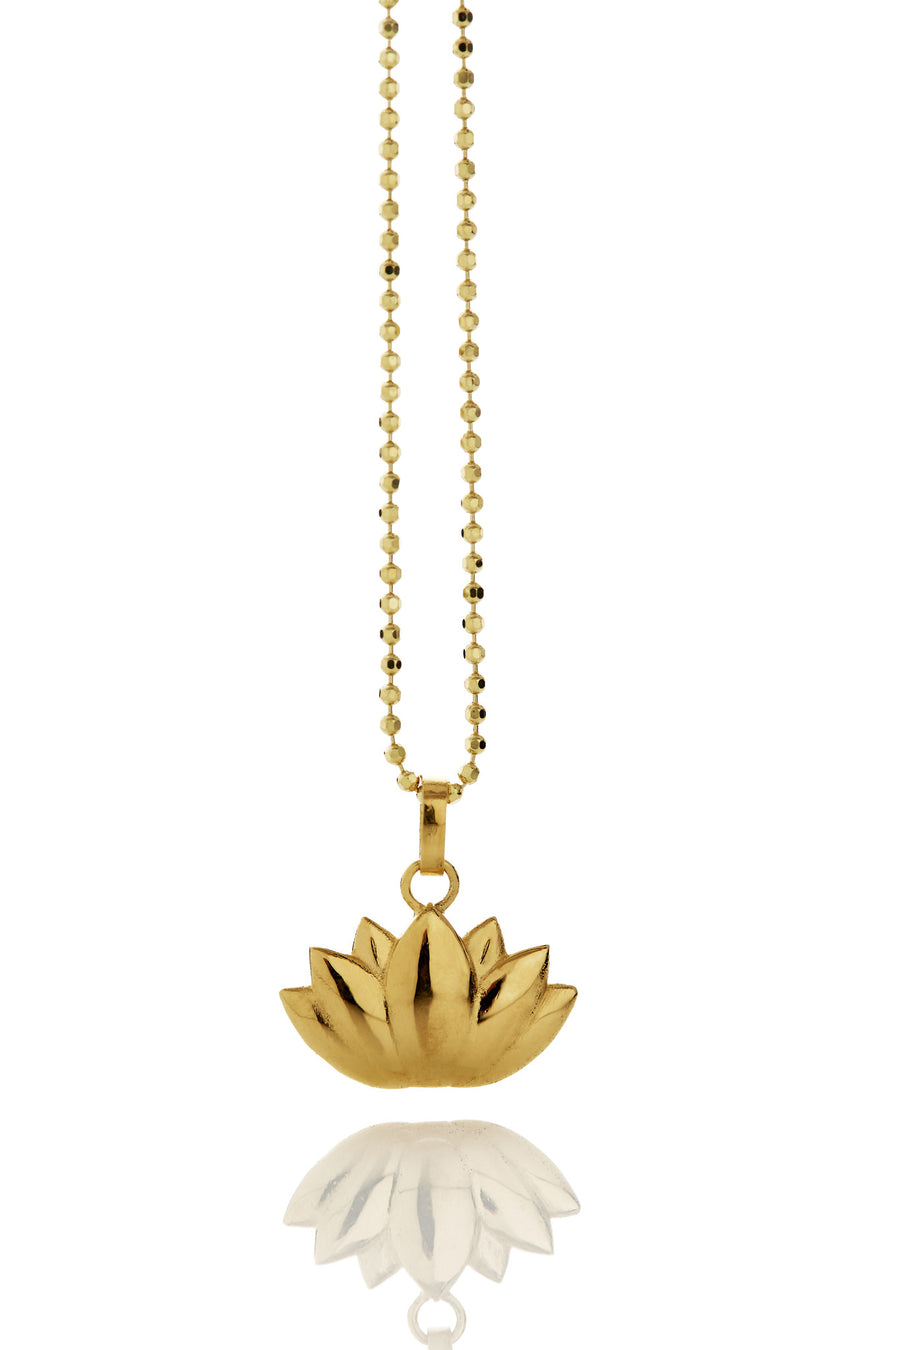 Lotus Flower - Mitos Jewellery